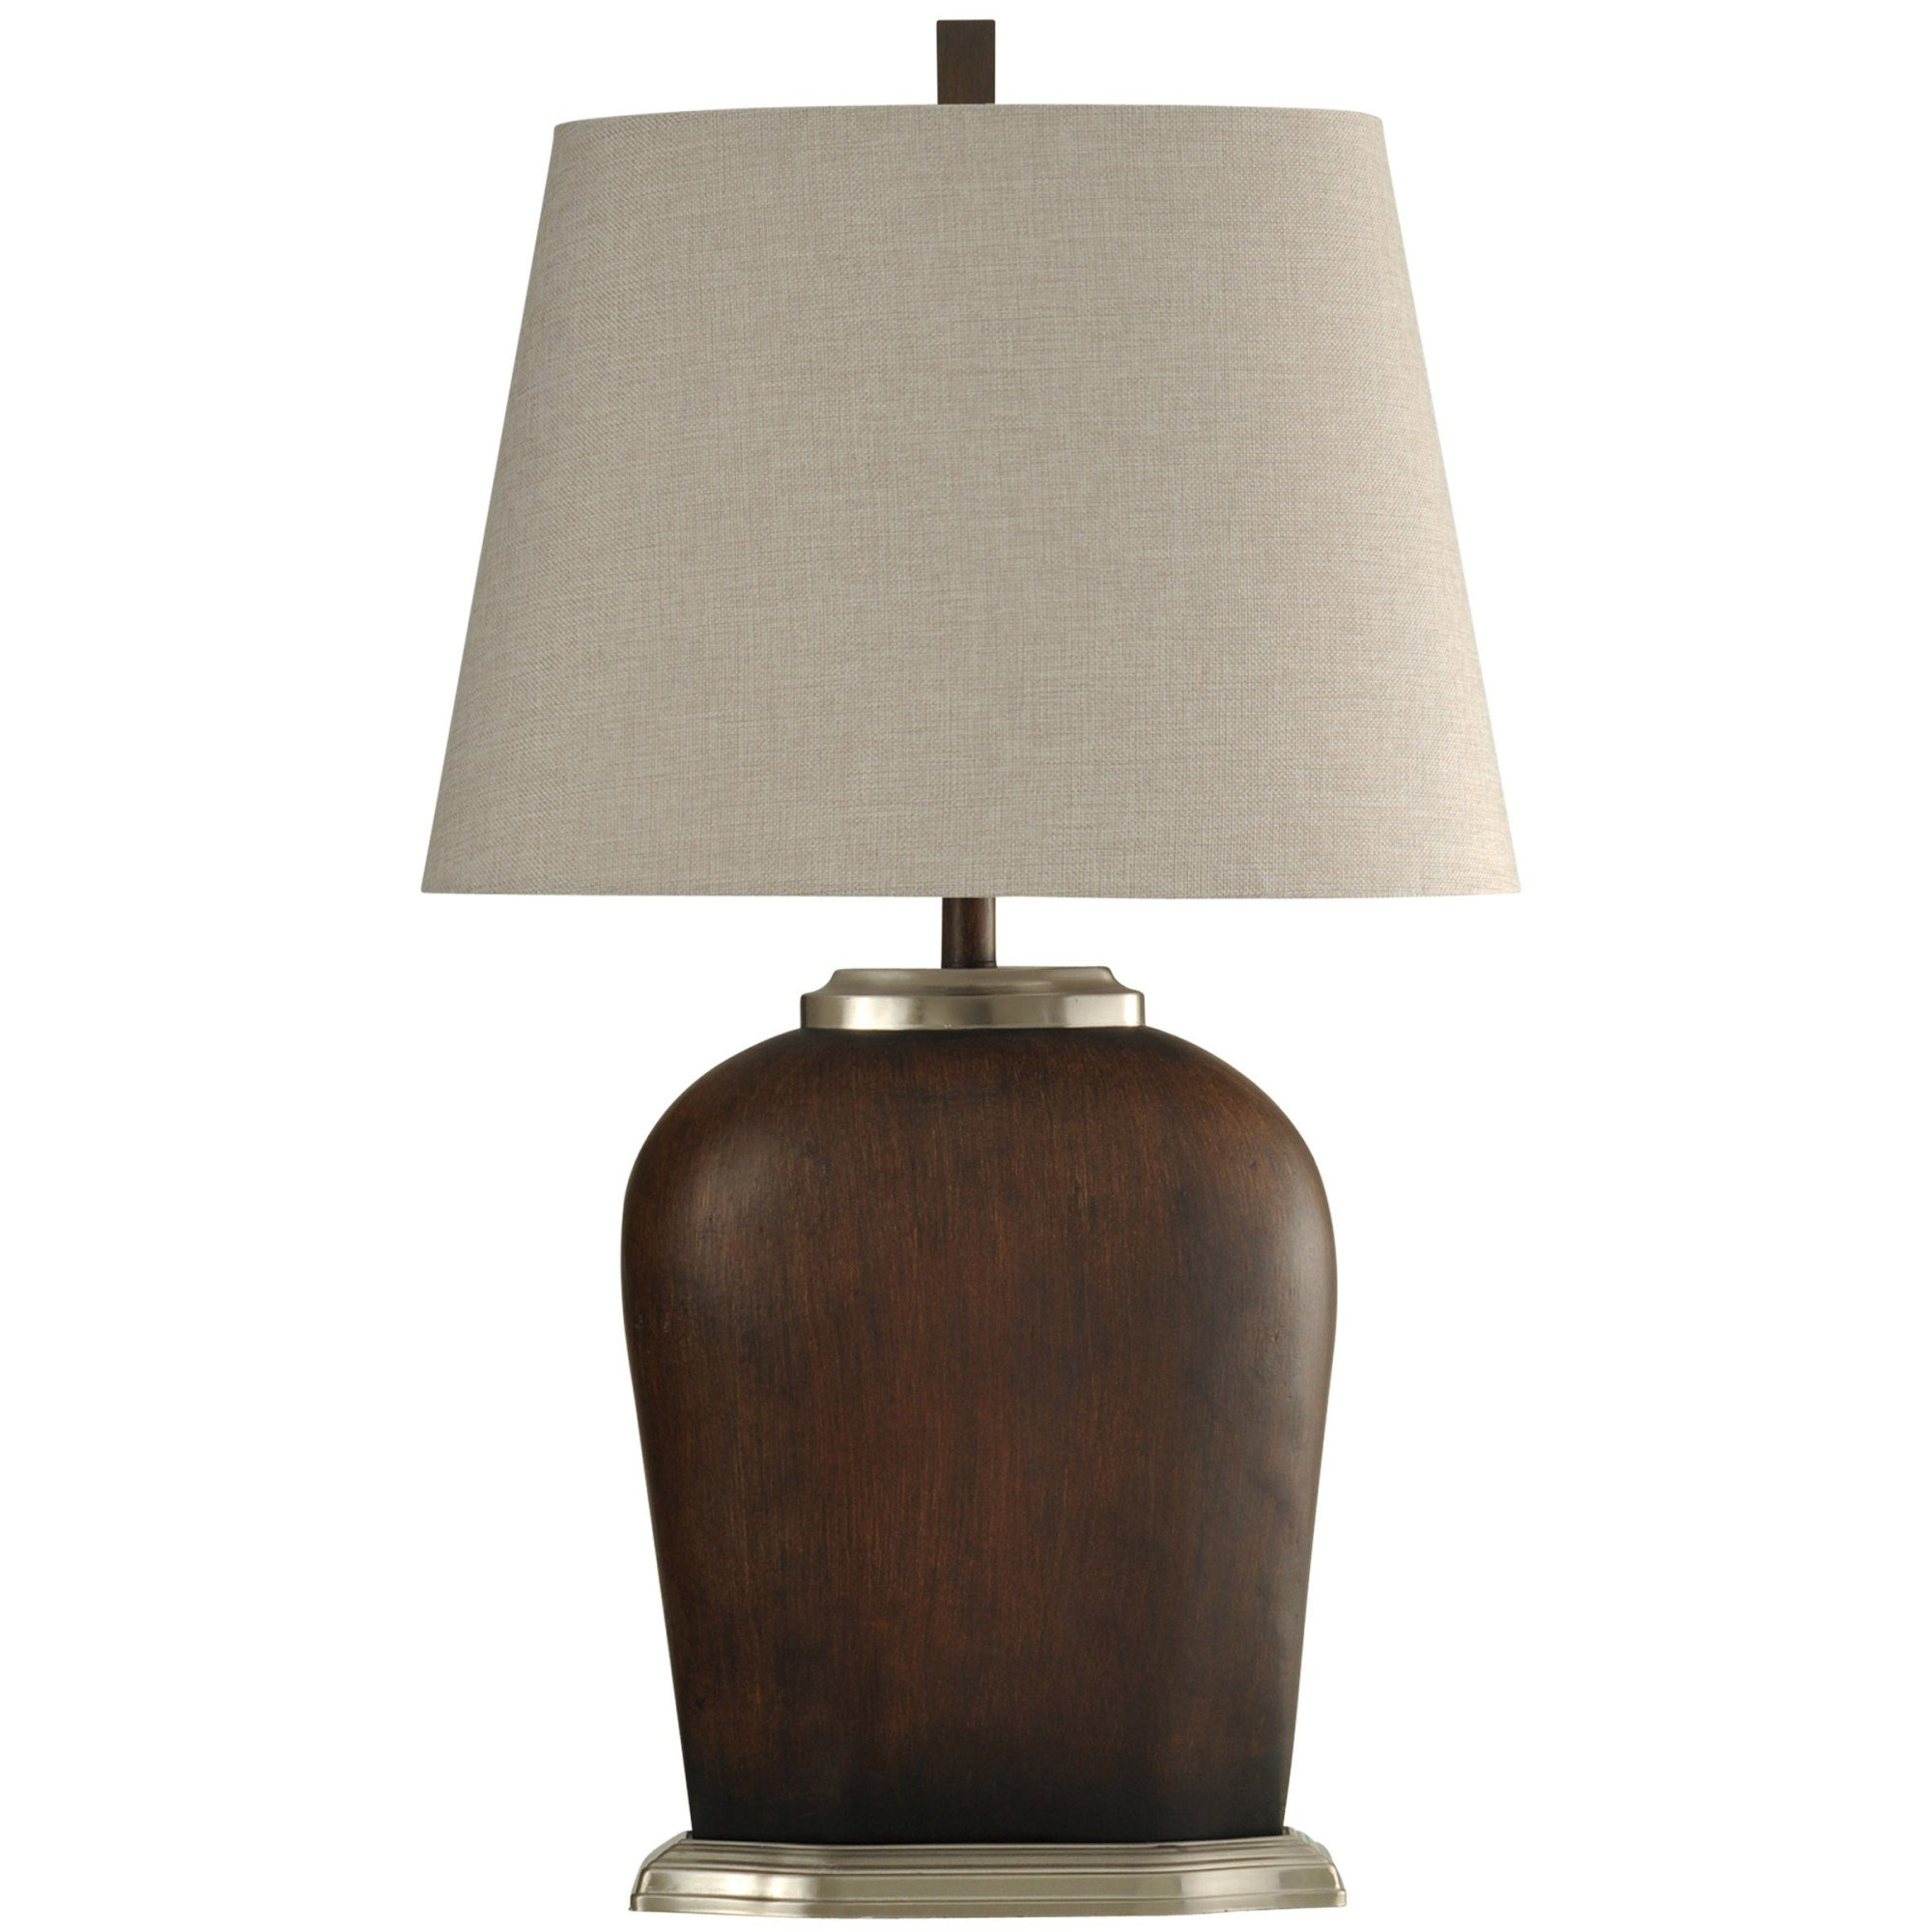 delacora stockbridge tall accent table lamp with hardback fabric shade lamps redwood free shipping today multi color coffee black marble end outdoor bench seats battery operated